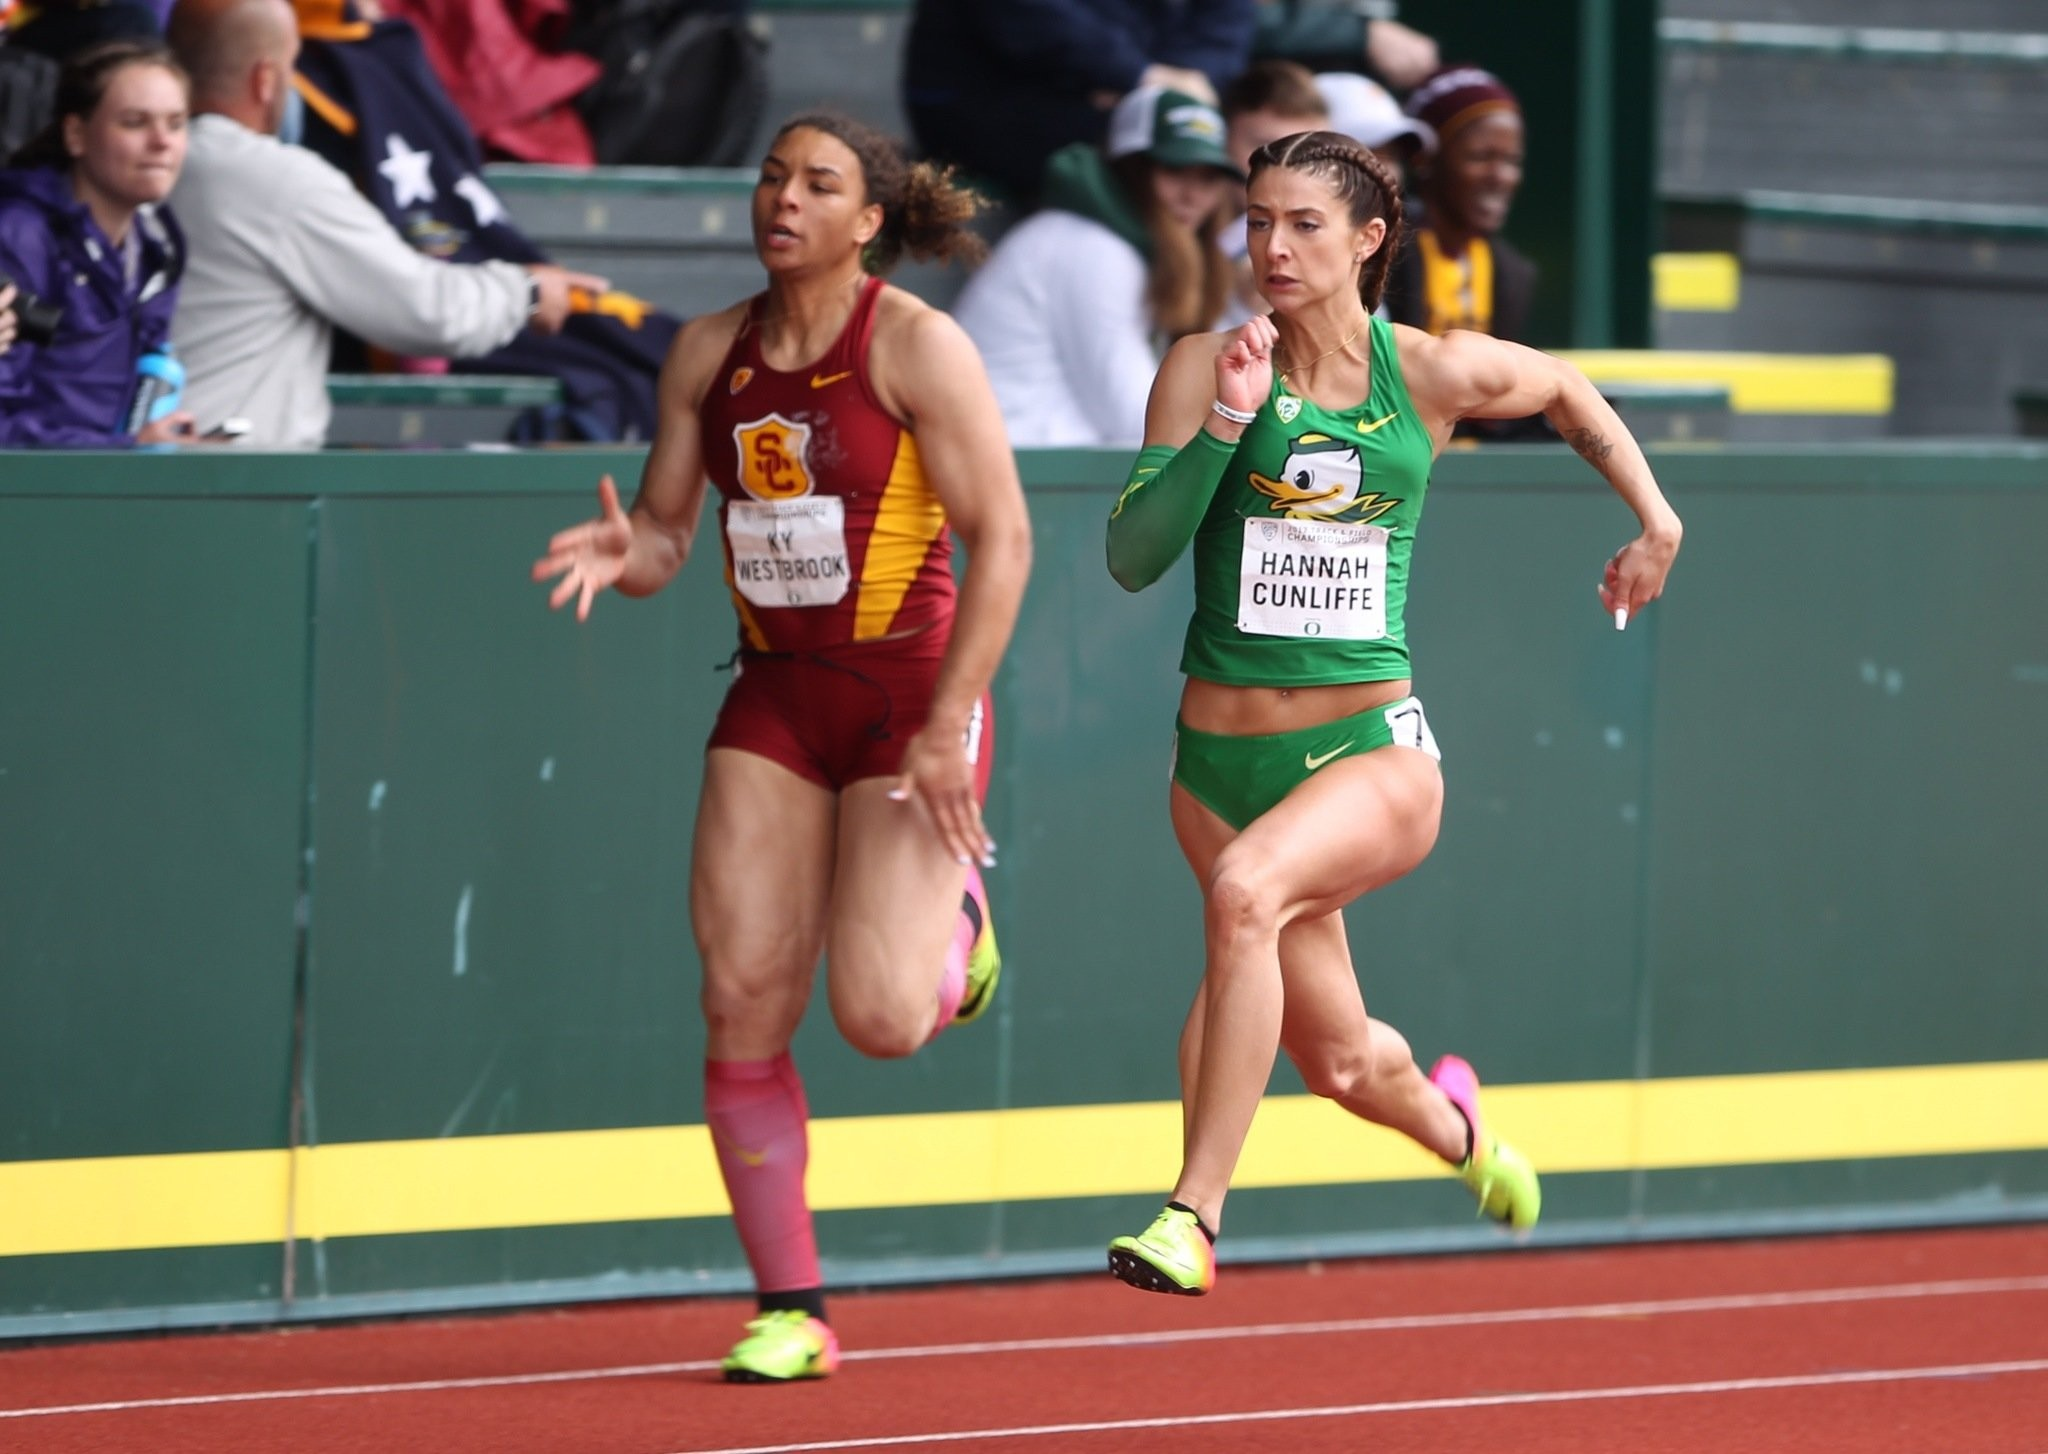 Ex Oregon sprinter Hannah Cunliffe is healthy now and ready to run ...